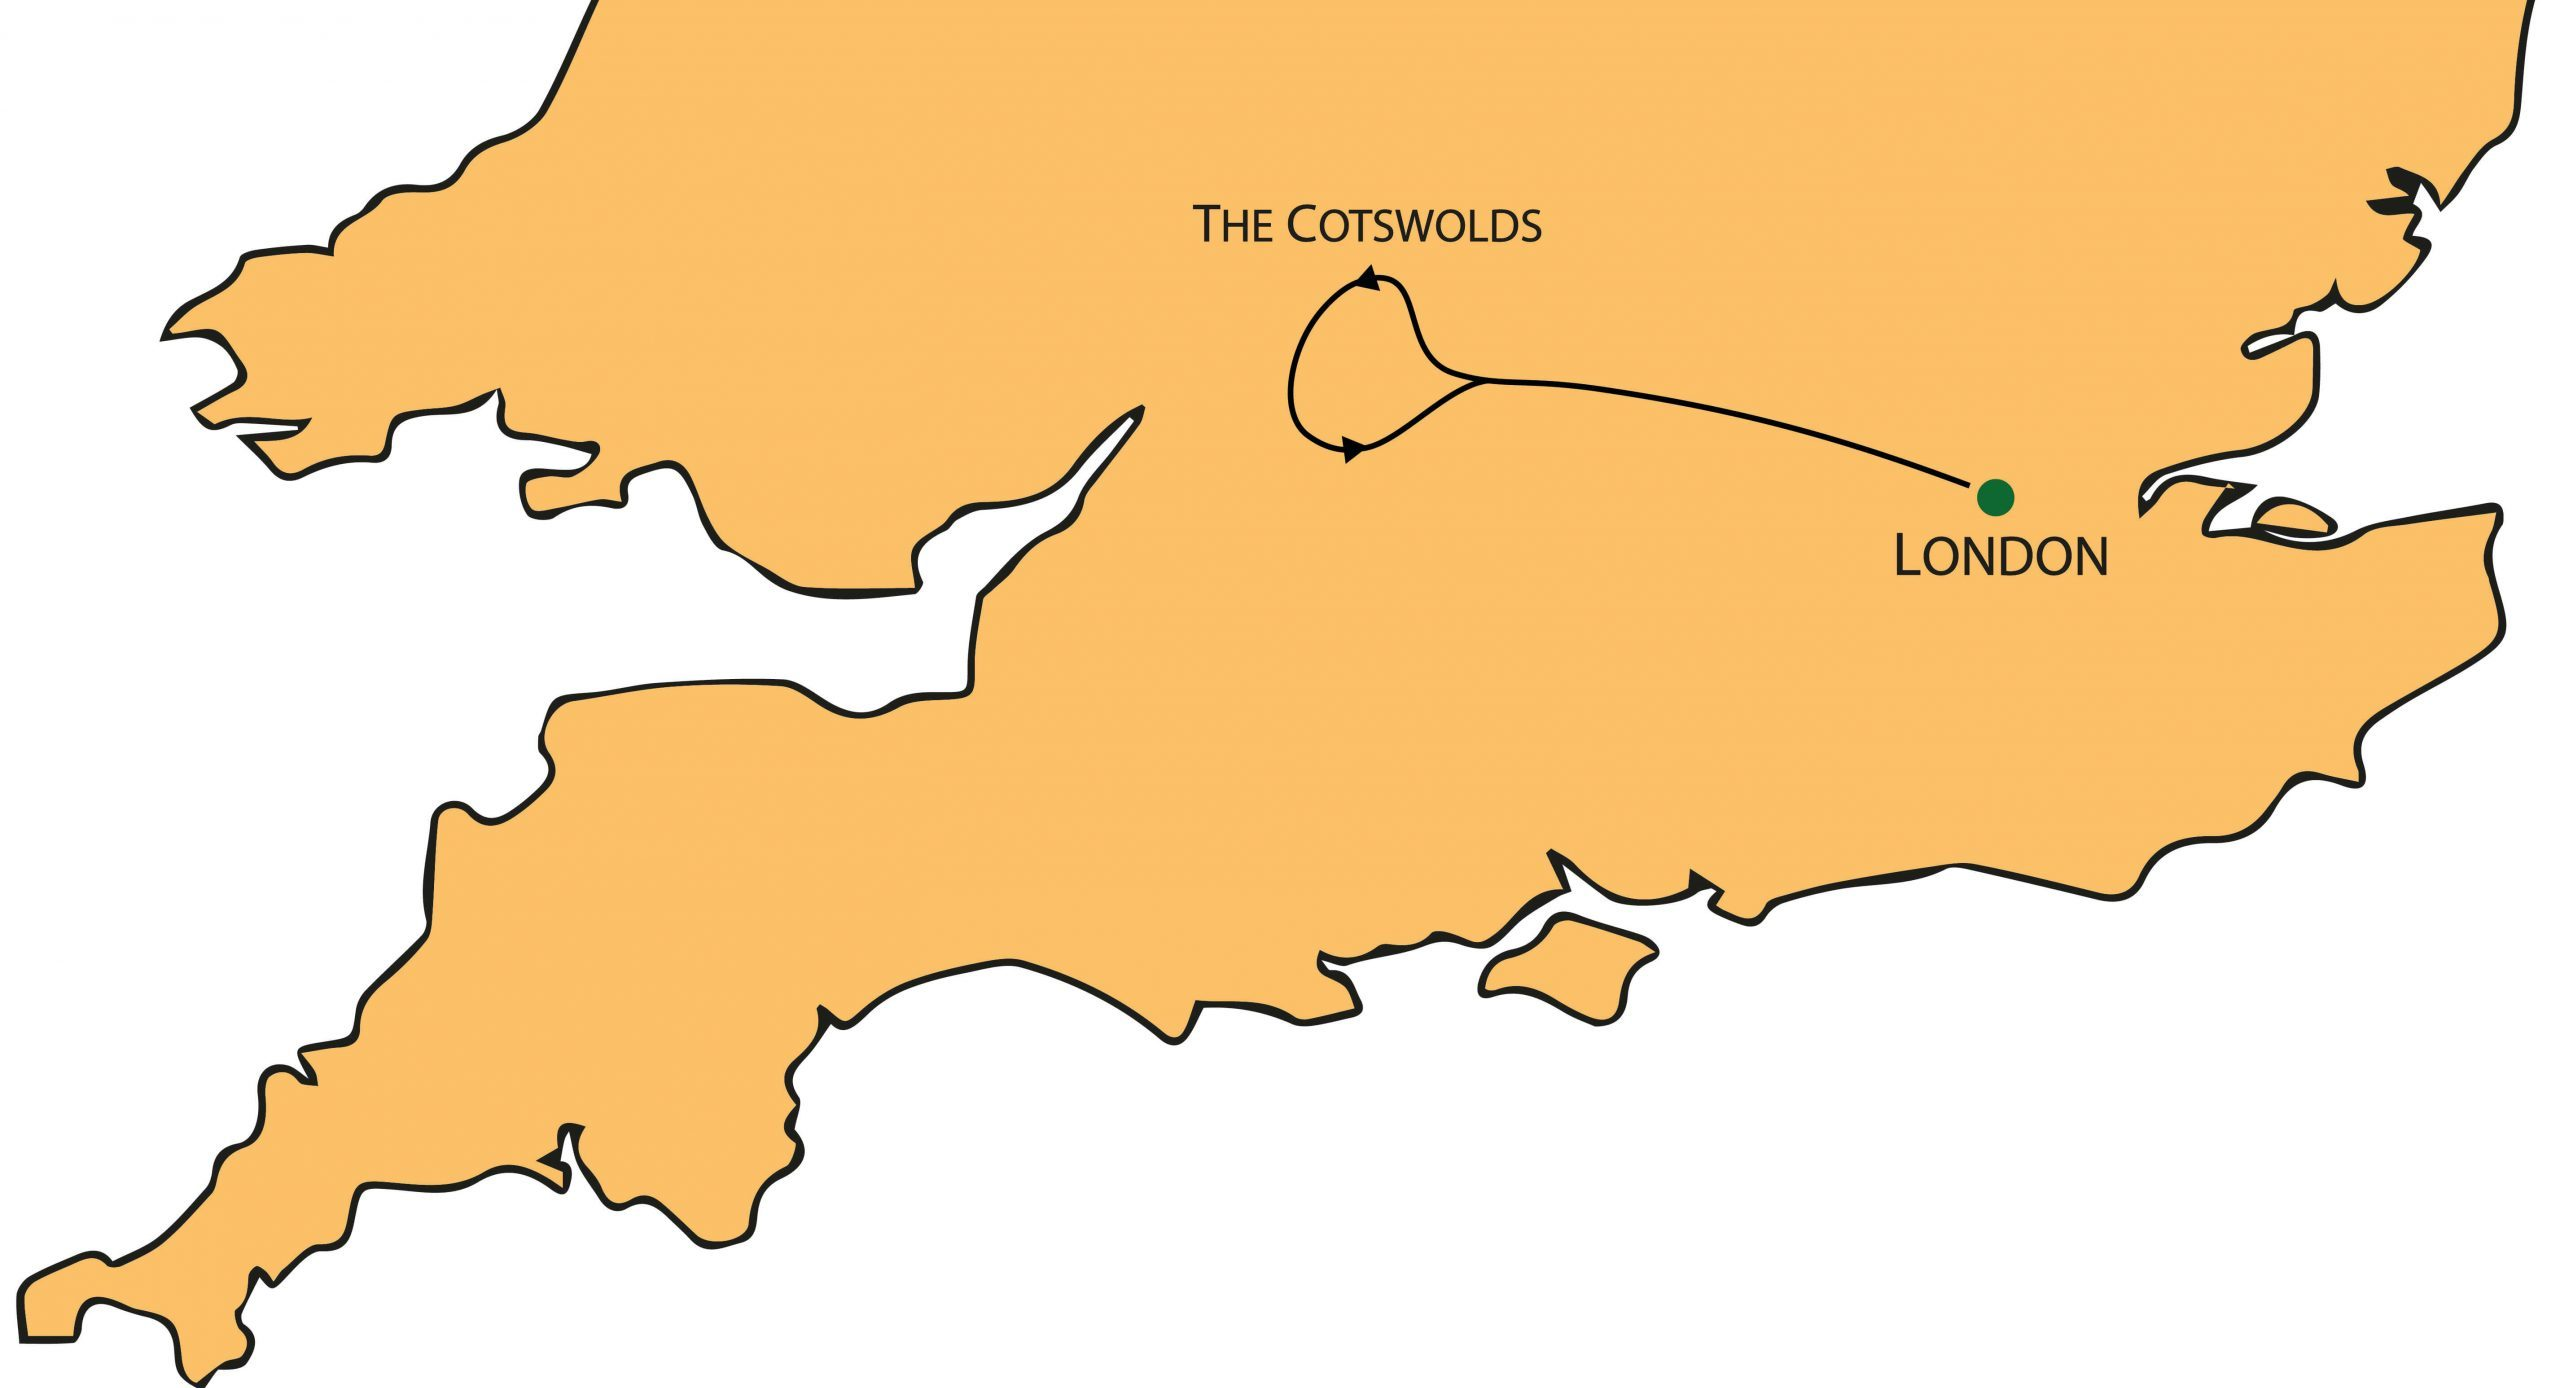 Complete Cotswolds Tour from London Map